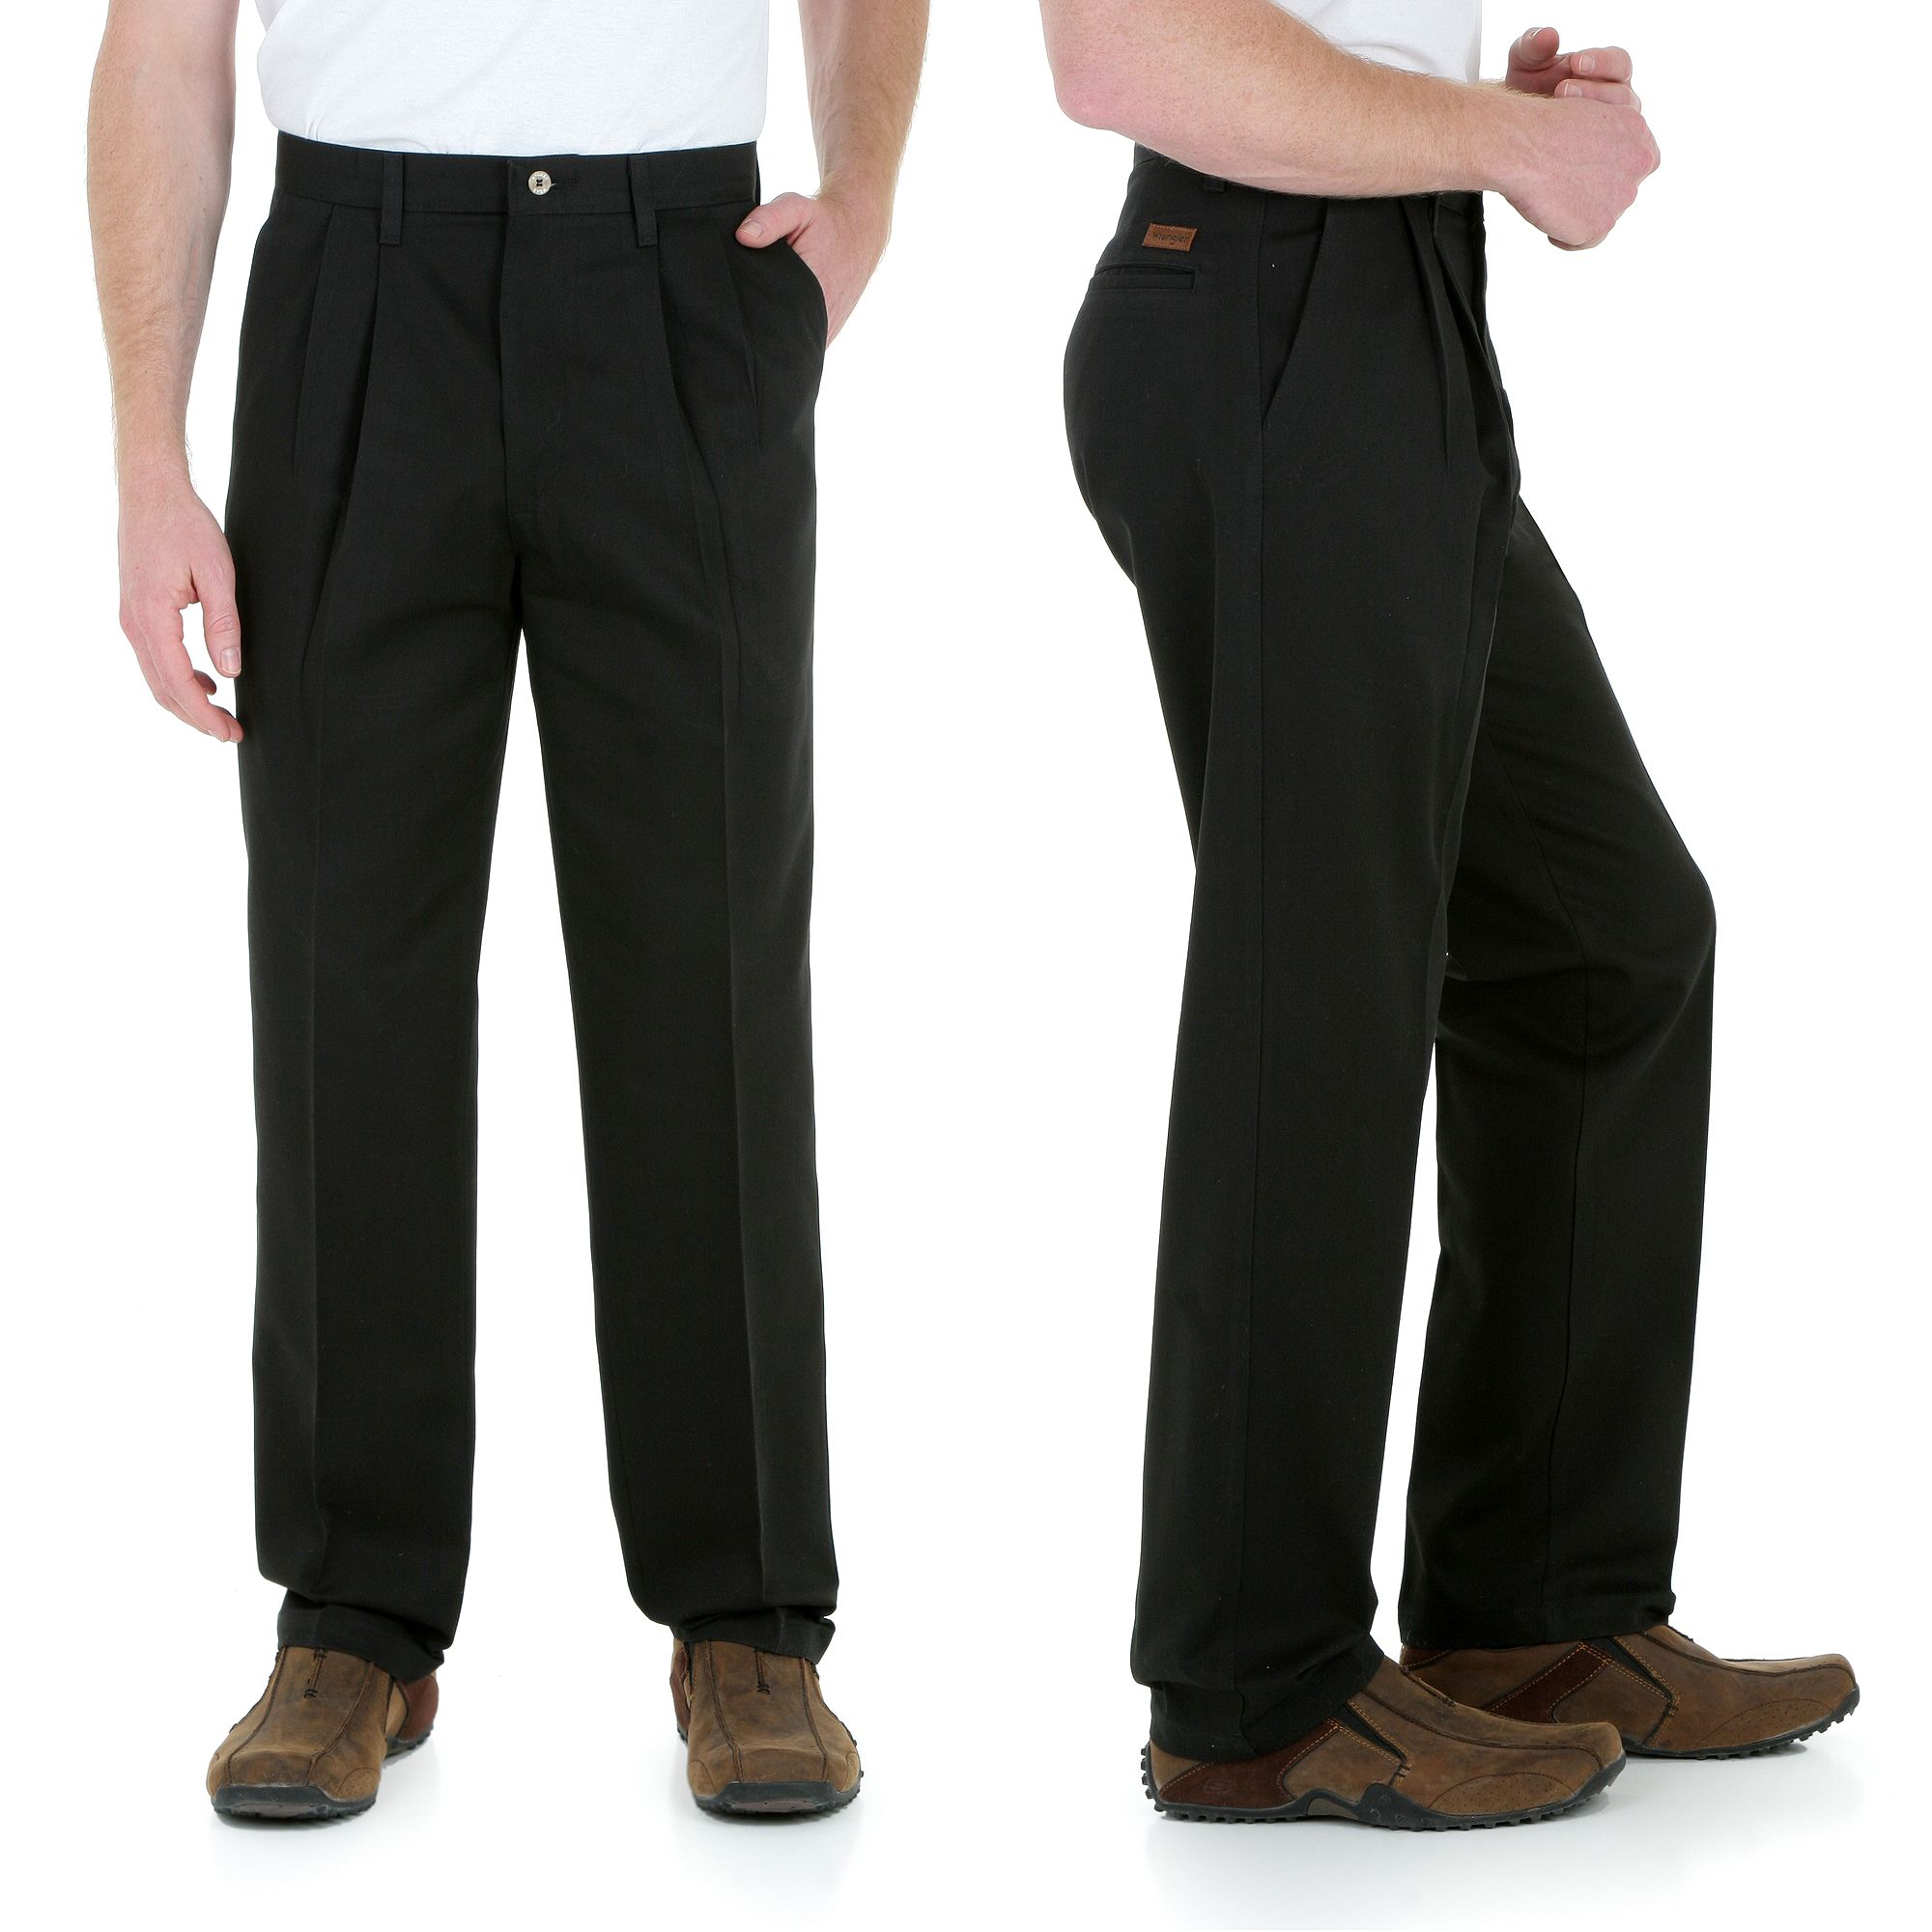 Wrangler Big and Tall Wrinkle and Stain Resistant Pleated Pants Black Big and Tall Mens Clothing at Big & Tall Pants Warehouse